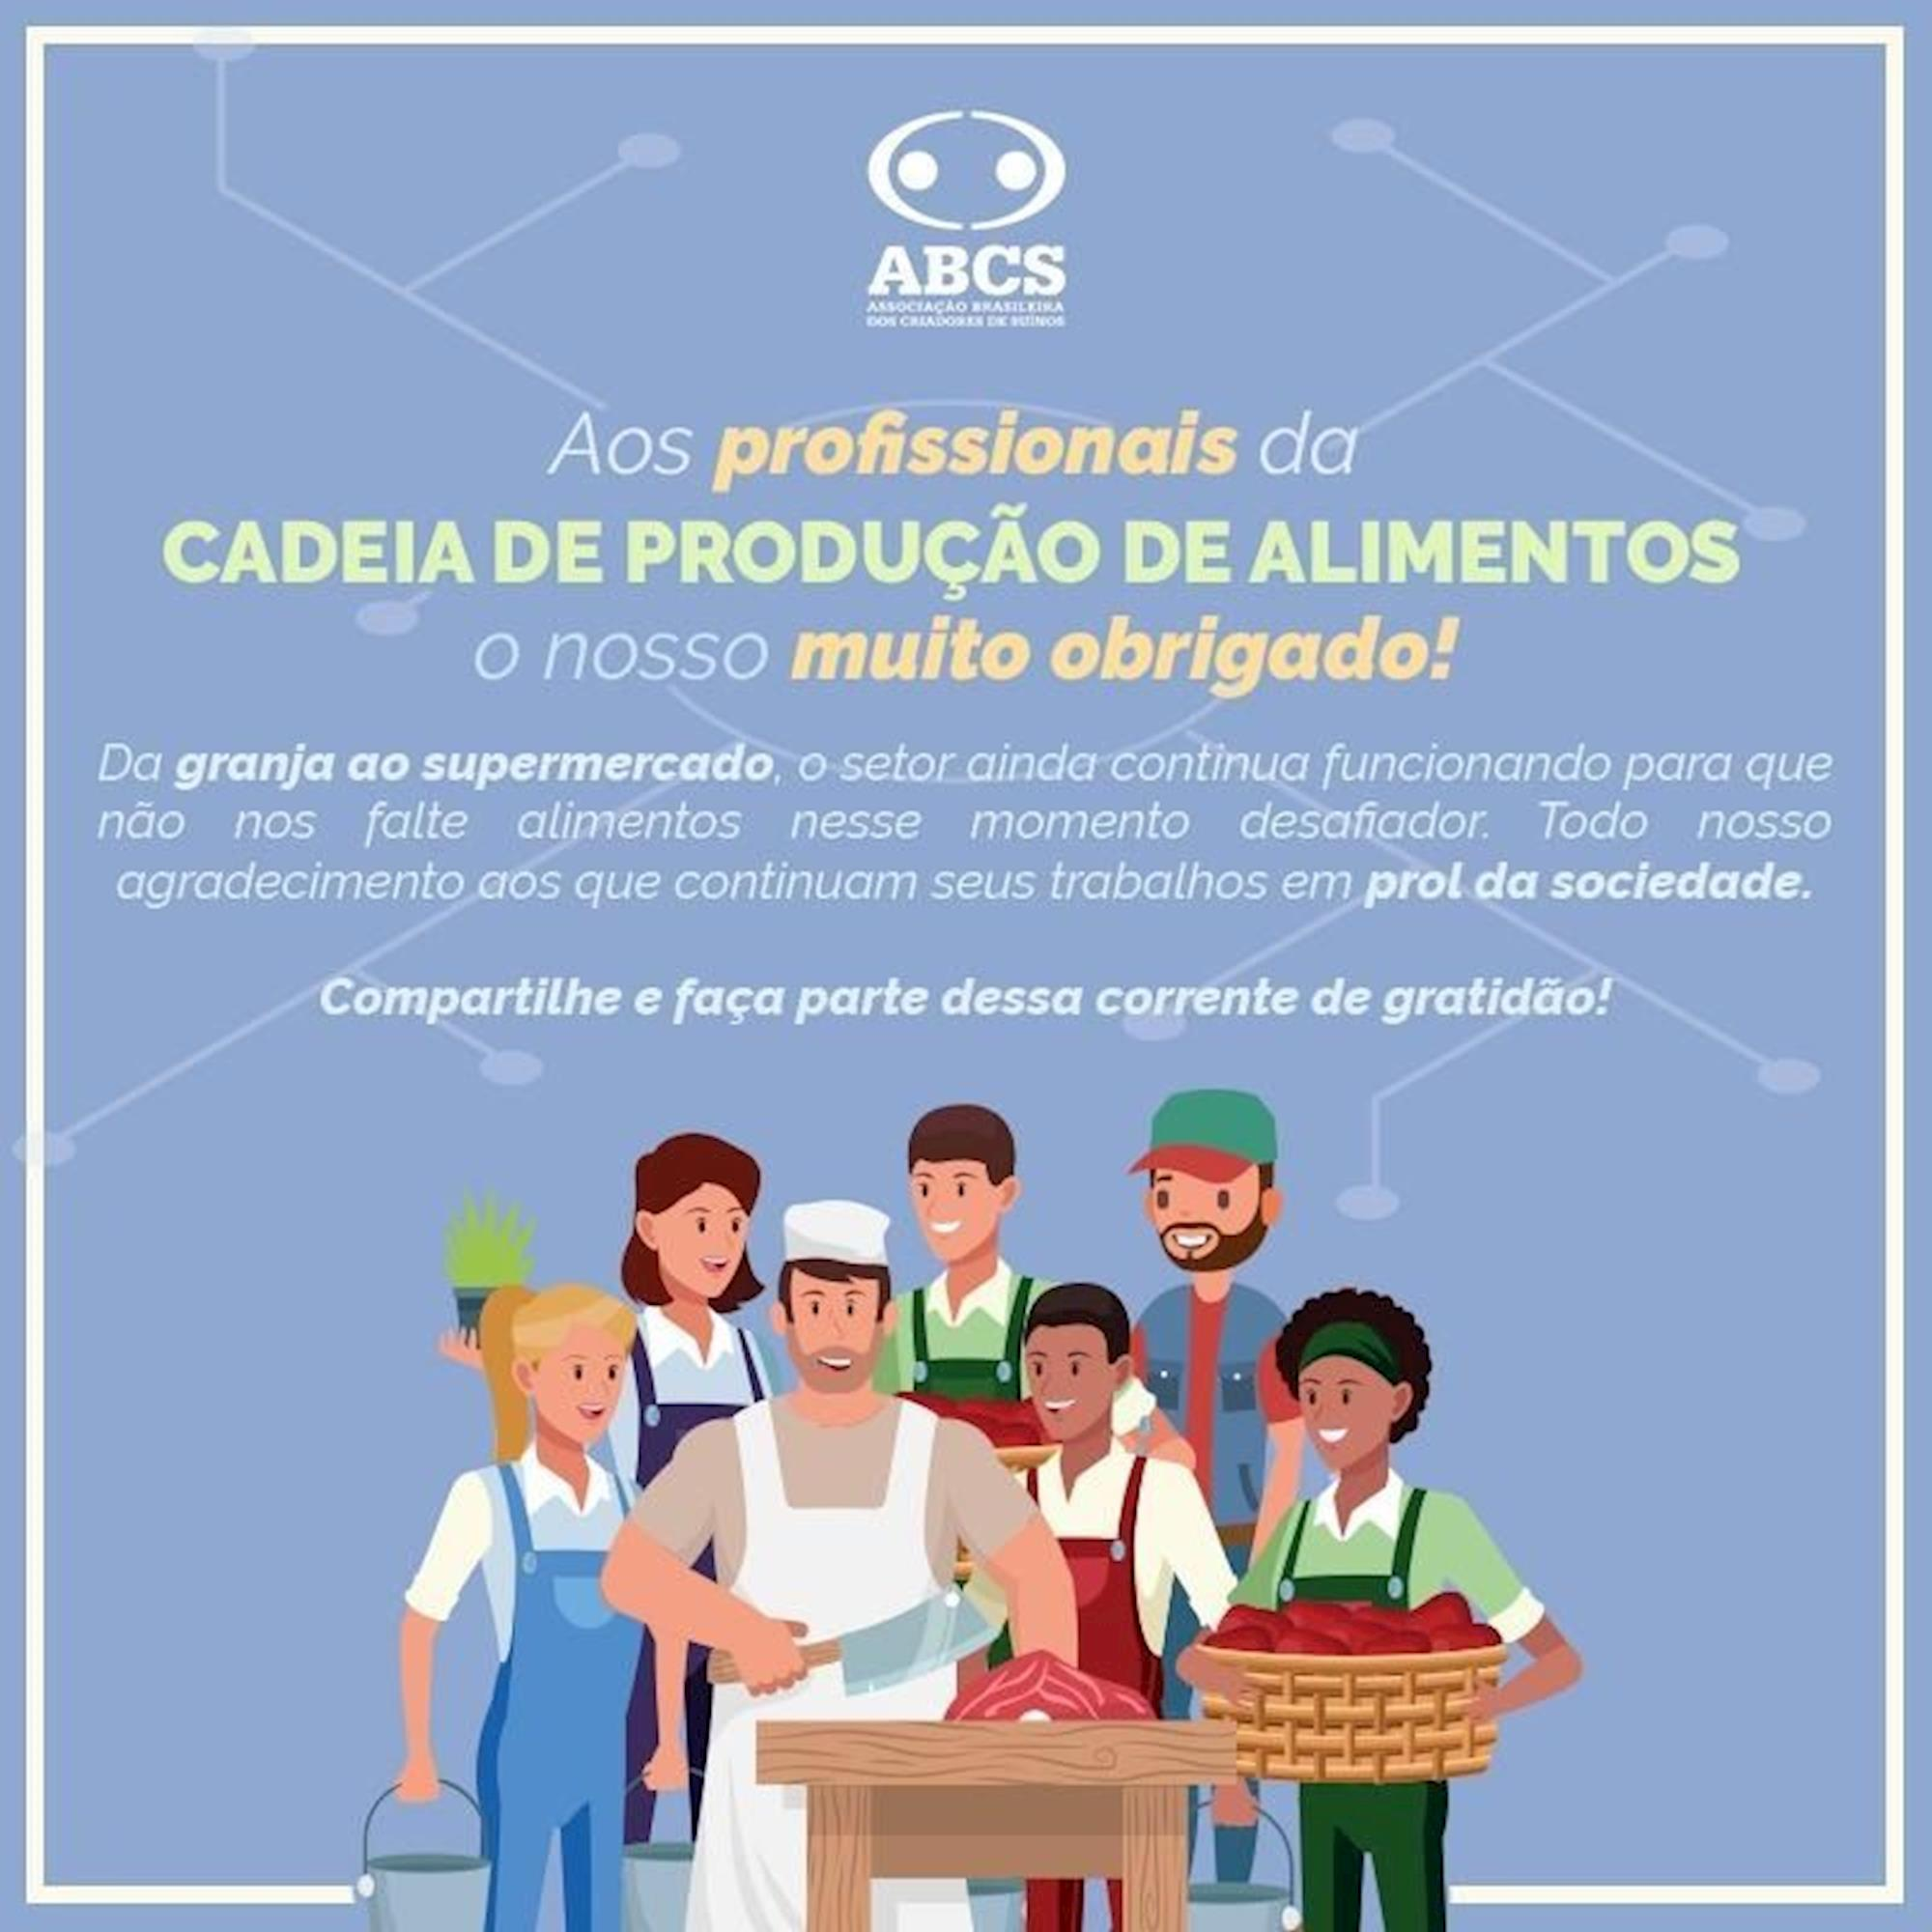 Meat production in Brazil continues to guarantee supply, Meat production in Brazil continues to guarantee supply